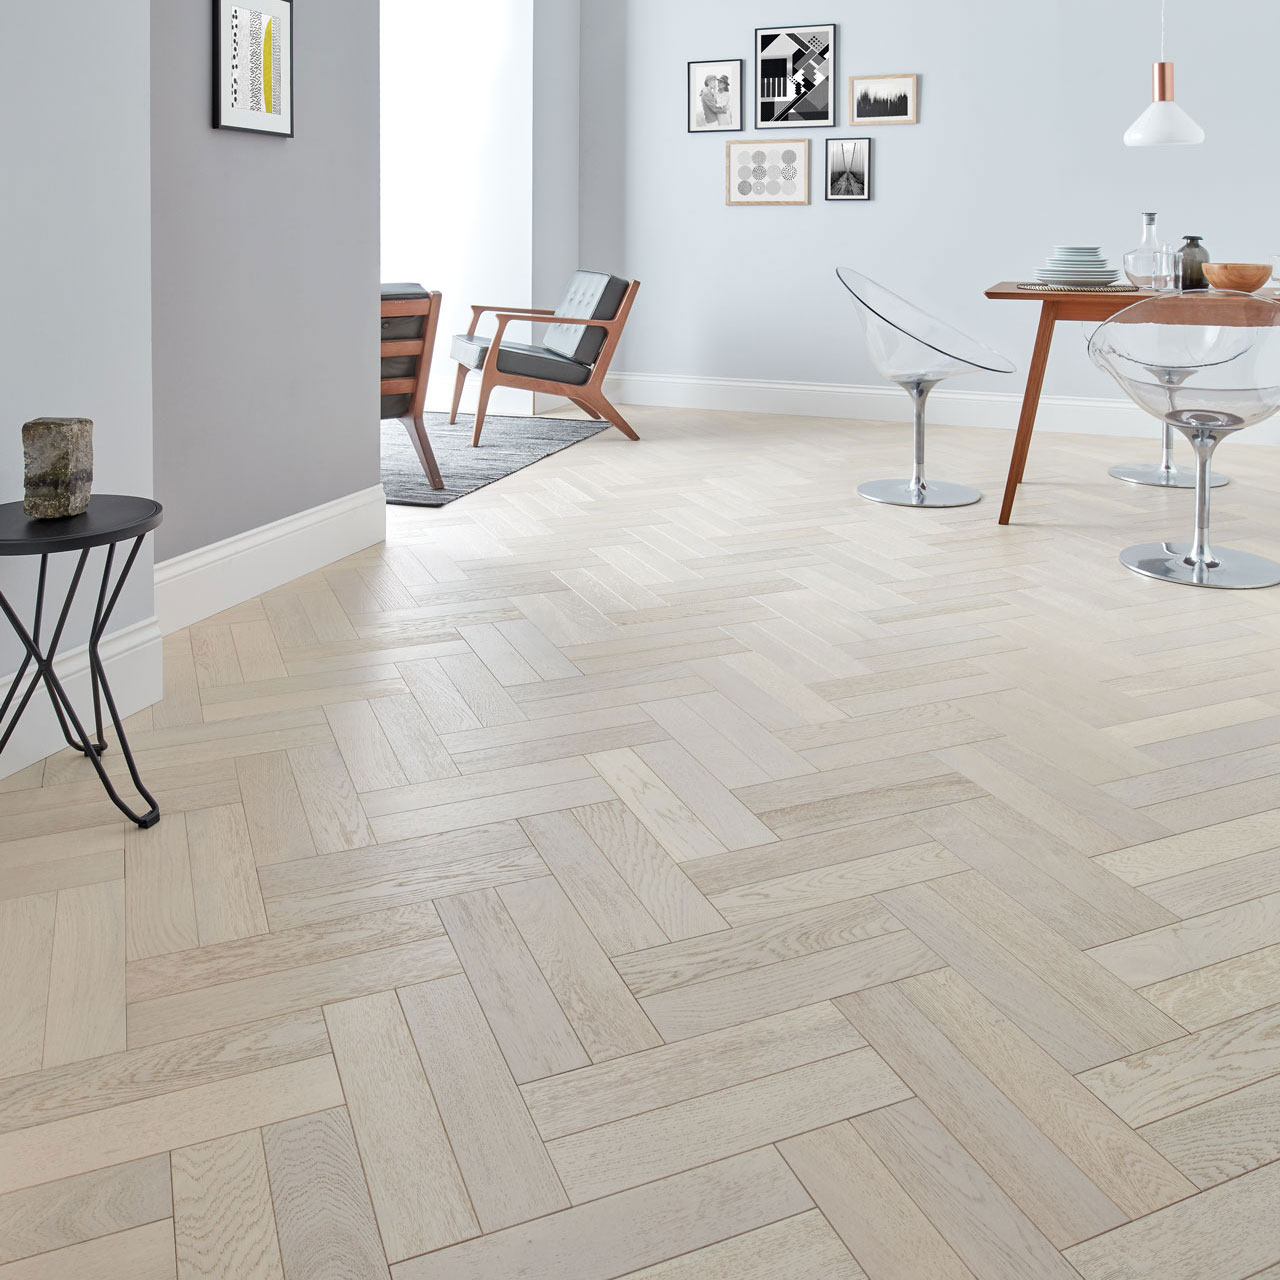 Wooden Flooring Provides The Charming Glow And The Vintage